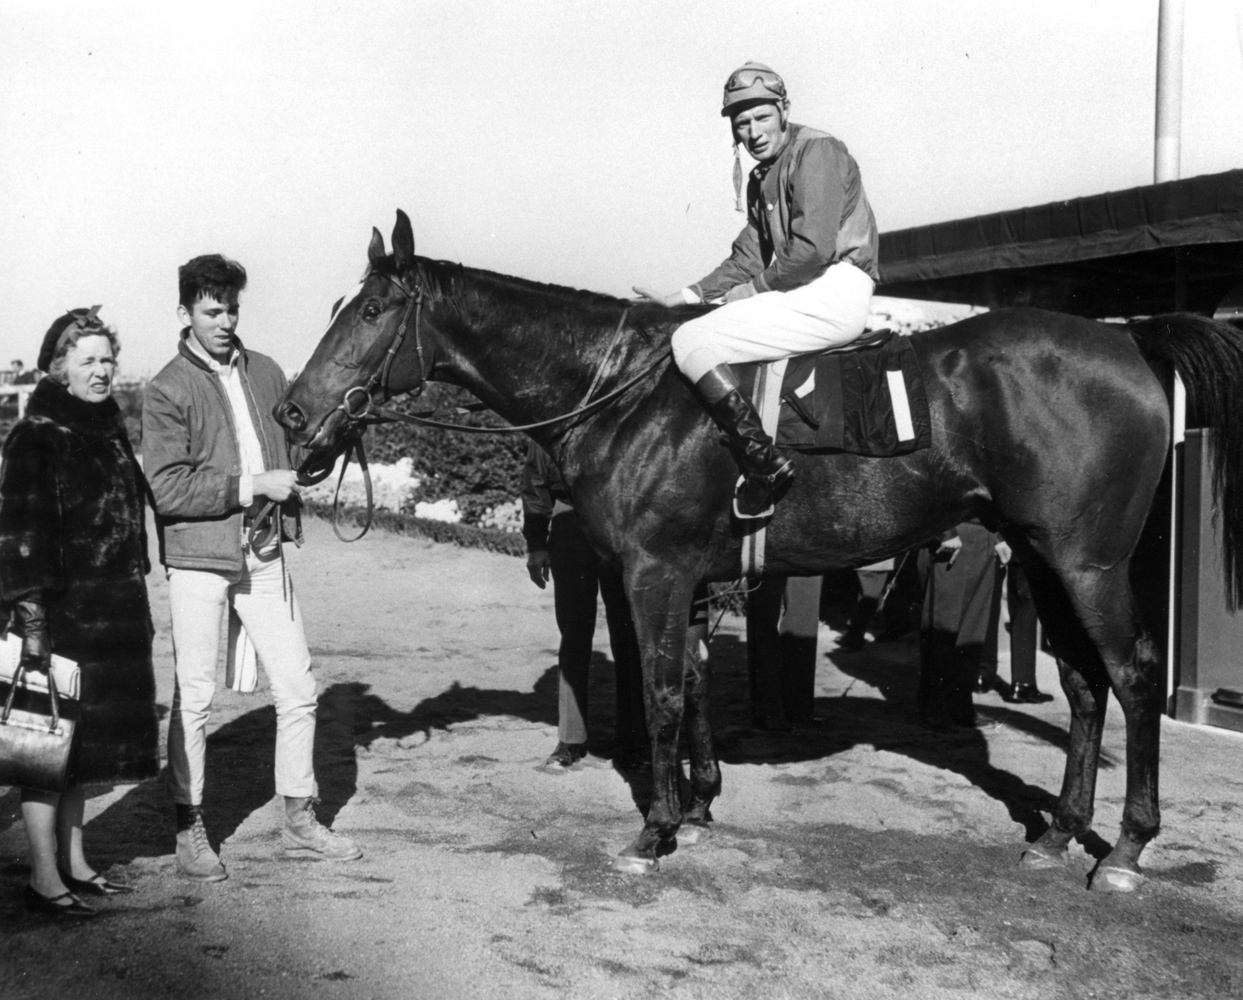 Bon Nouvel (Thomas Walsh up) in the winner's circle for the 1965 Temple Gwathmey (The BloodHorse/Museum Collection)